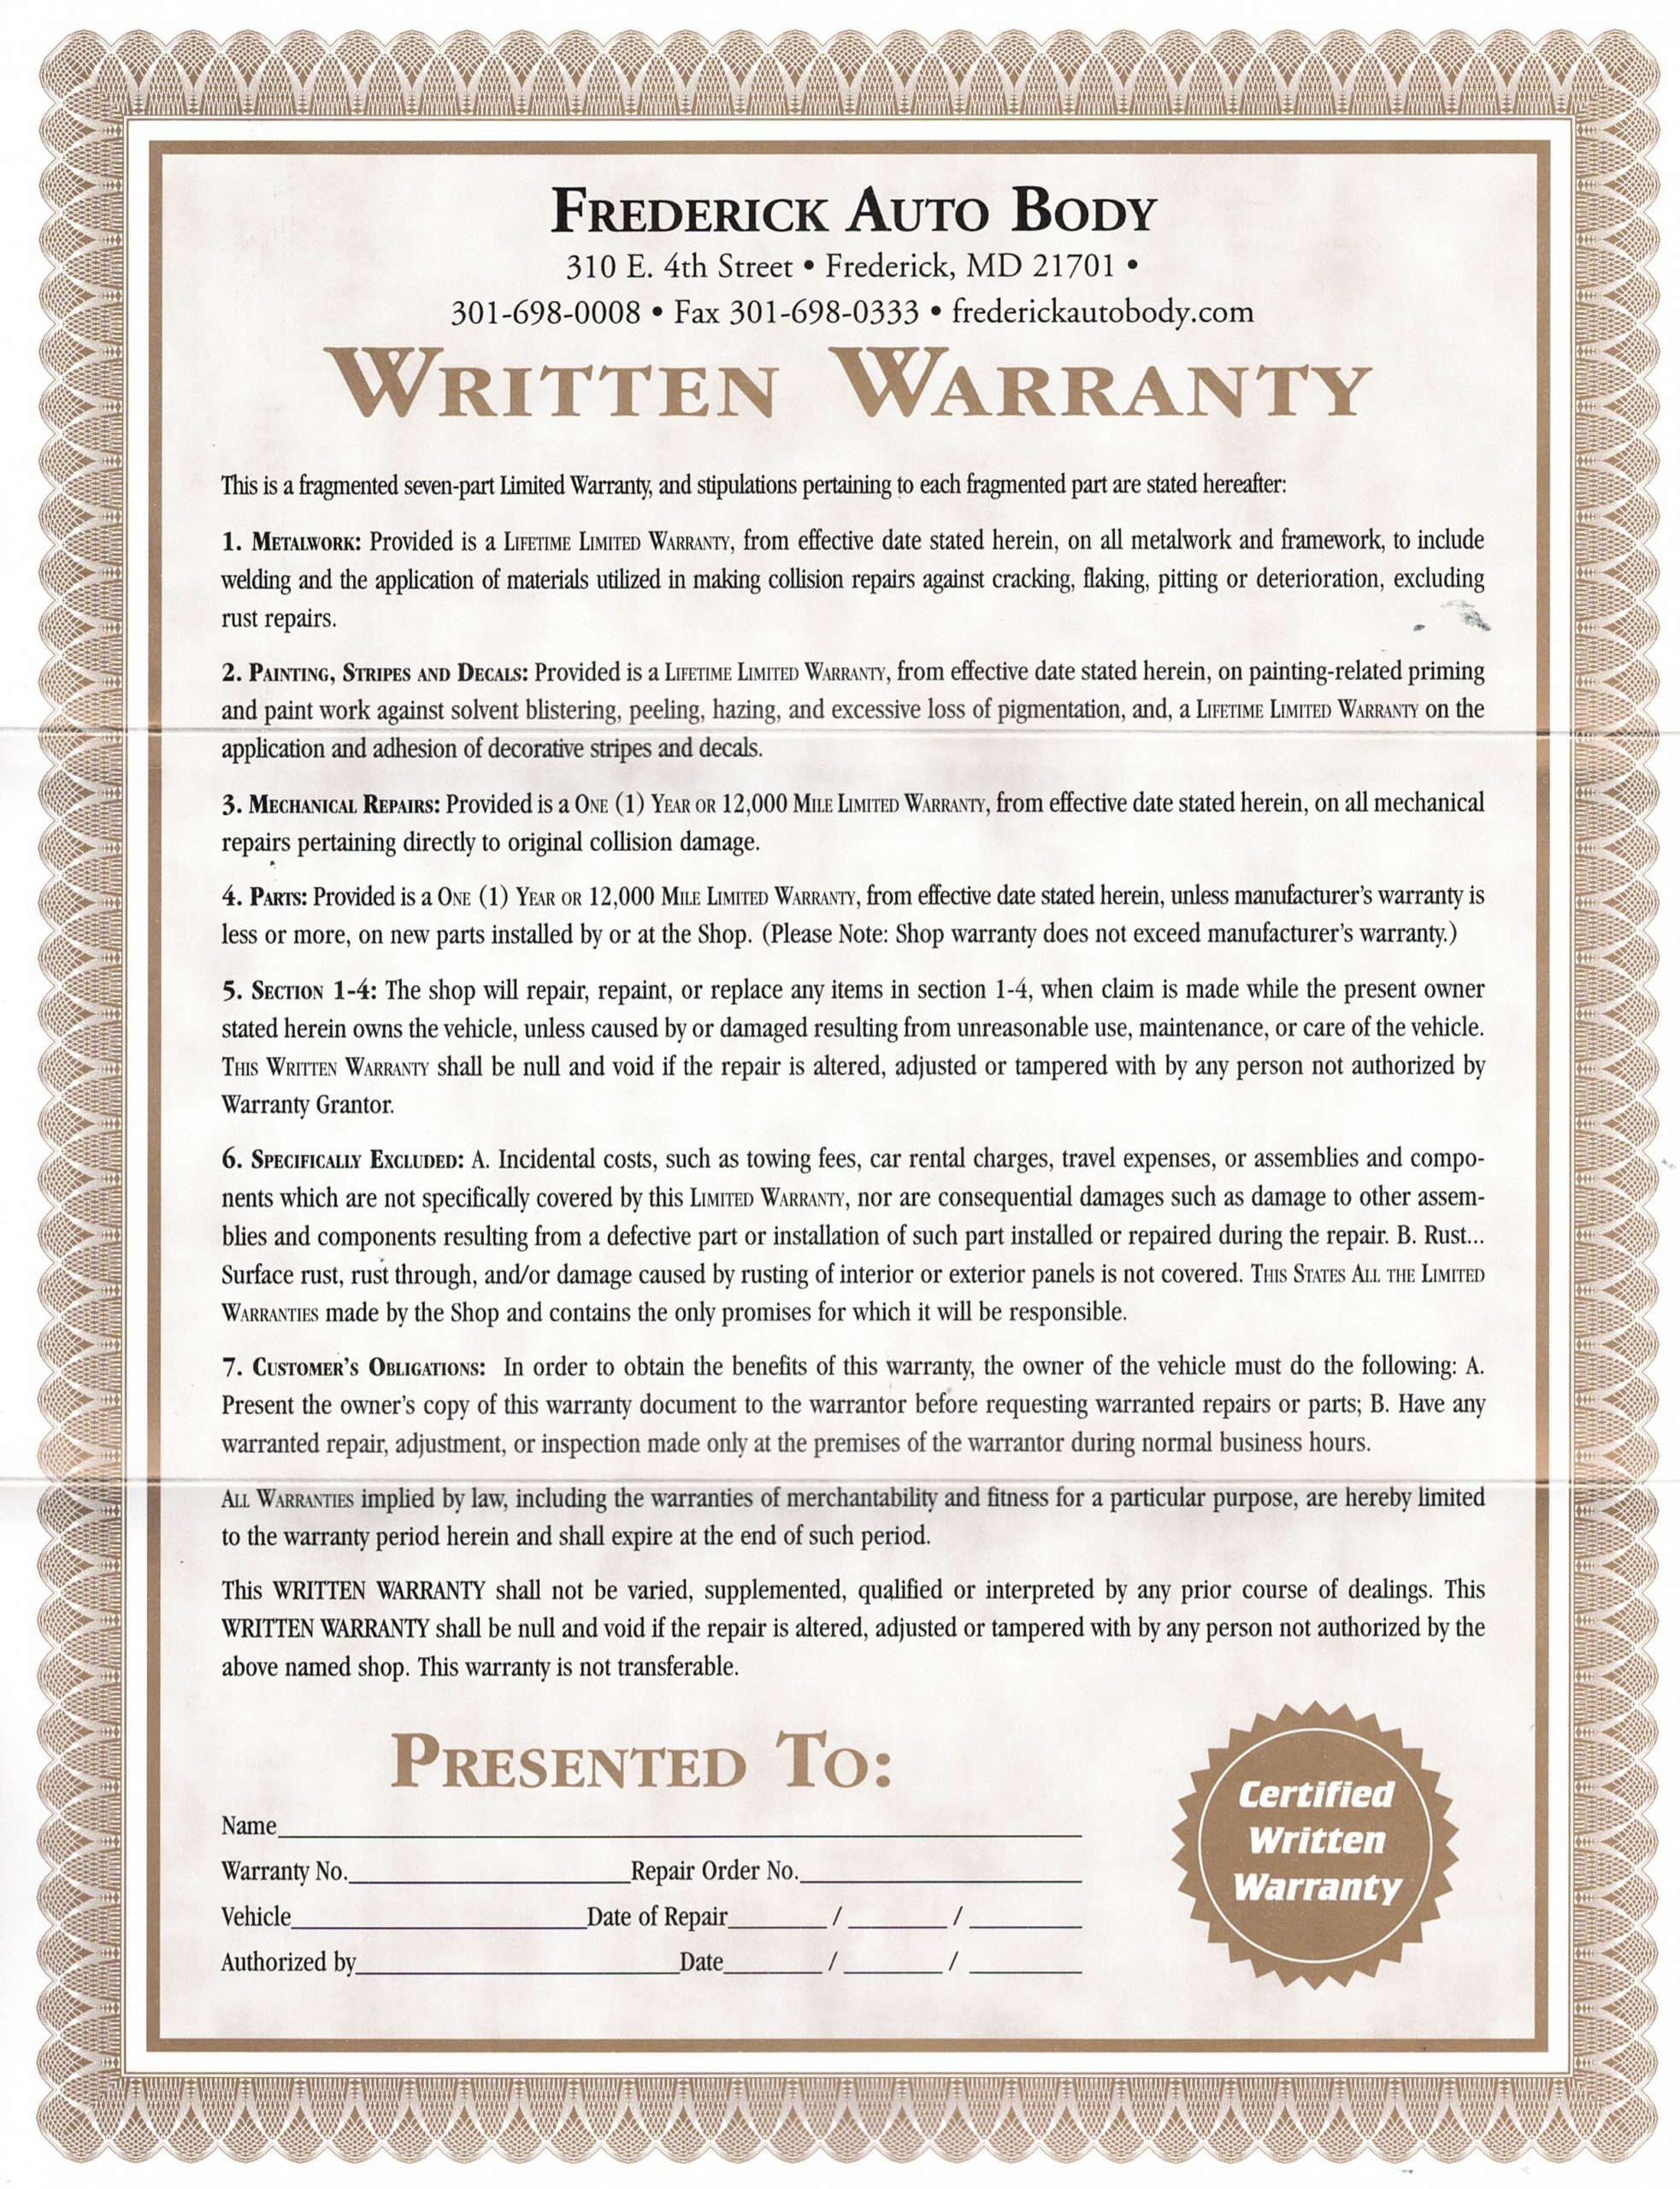 Frederick Auto Body Lifetime Warranty